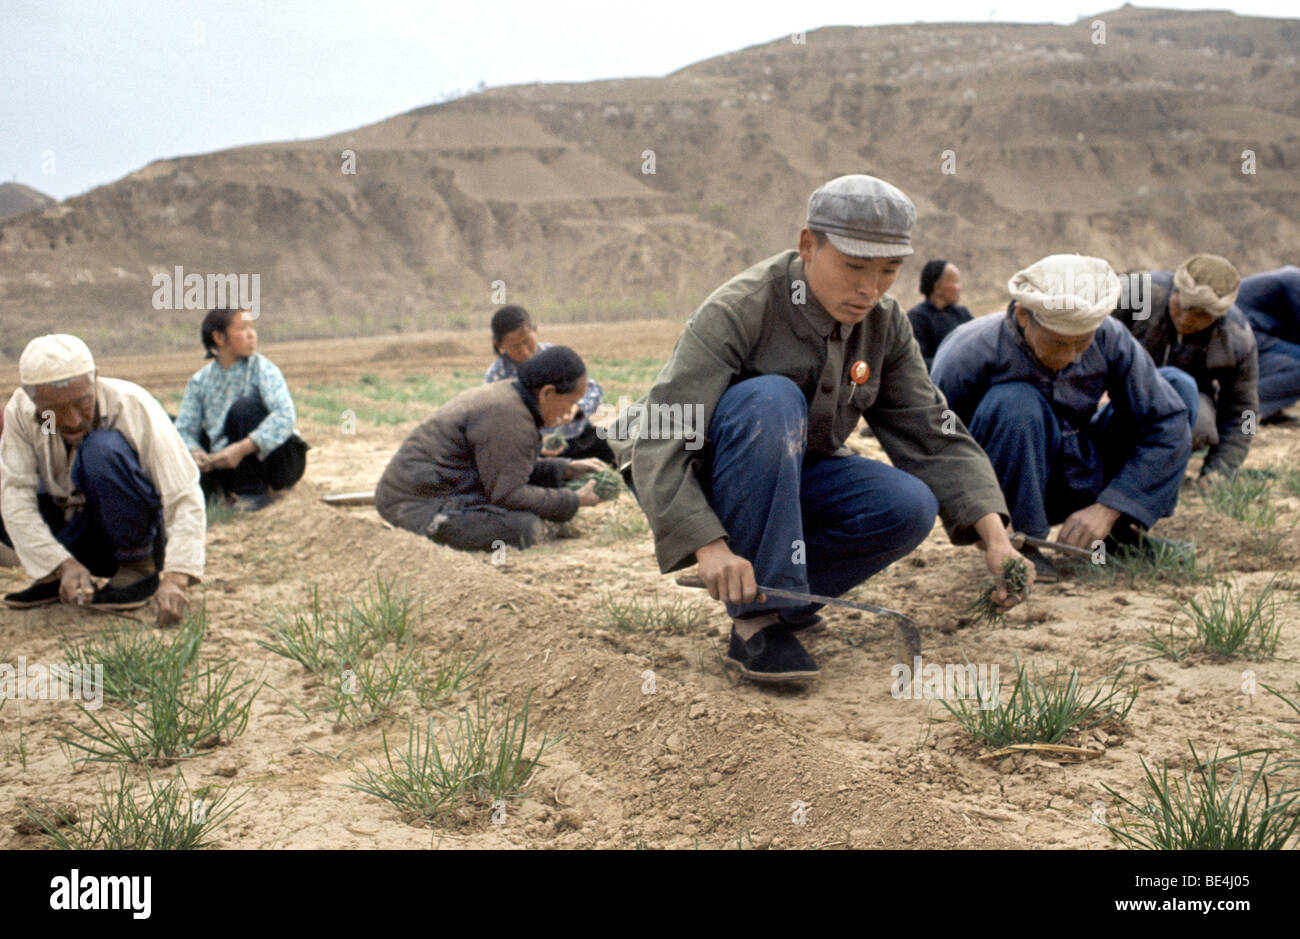 Commune near Canton where students work in the fields next to the peasants during the Cultural Revolution - Stock Image